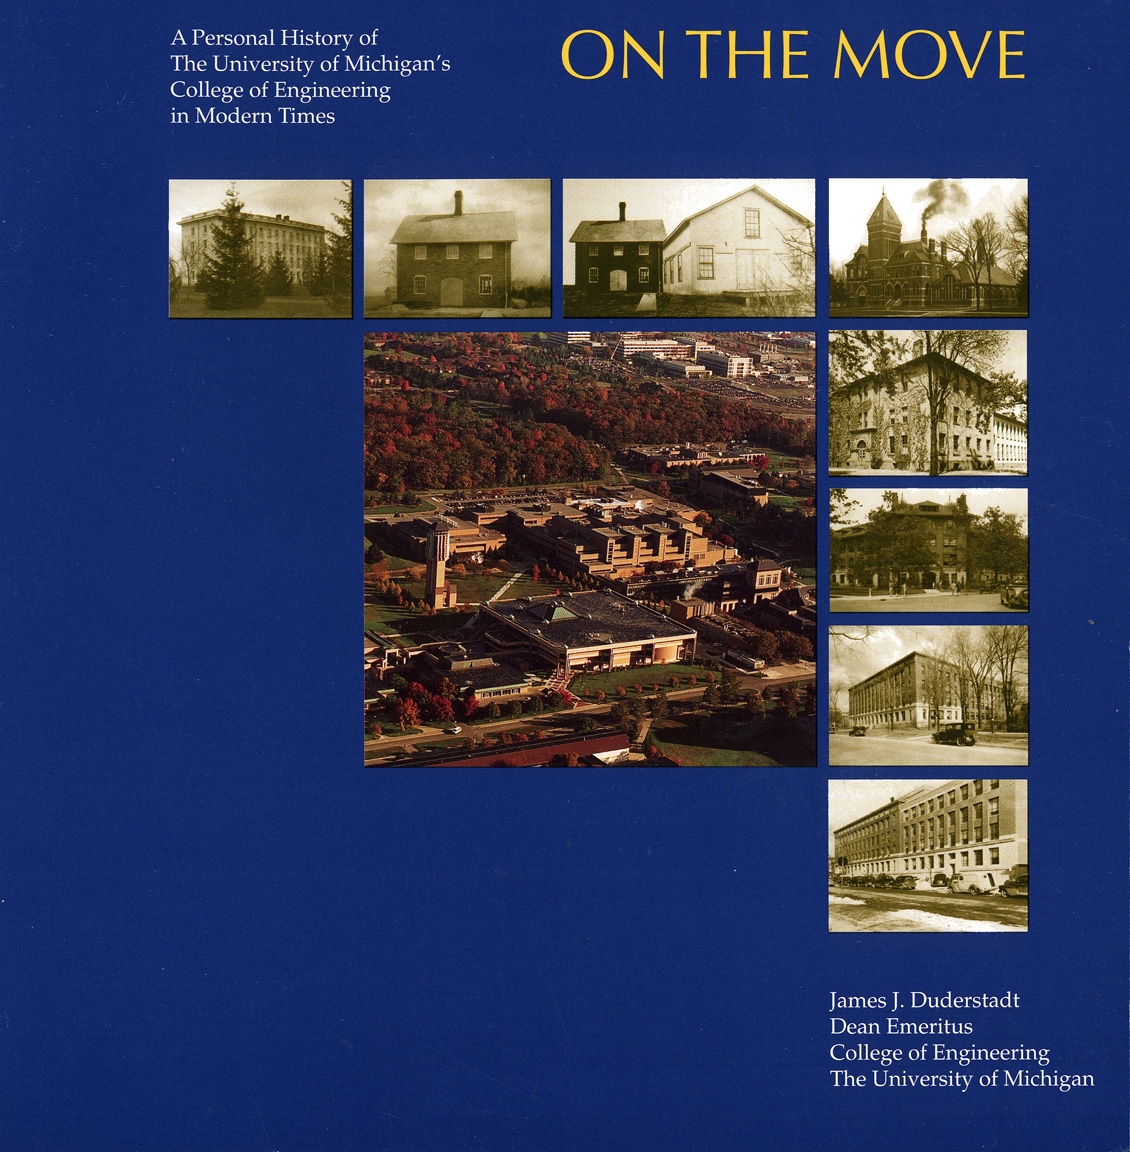 UM Engineering On the Move Book cover